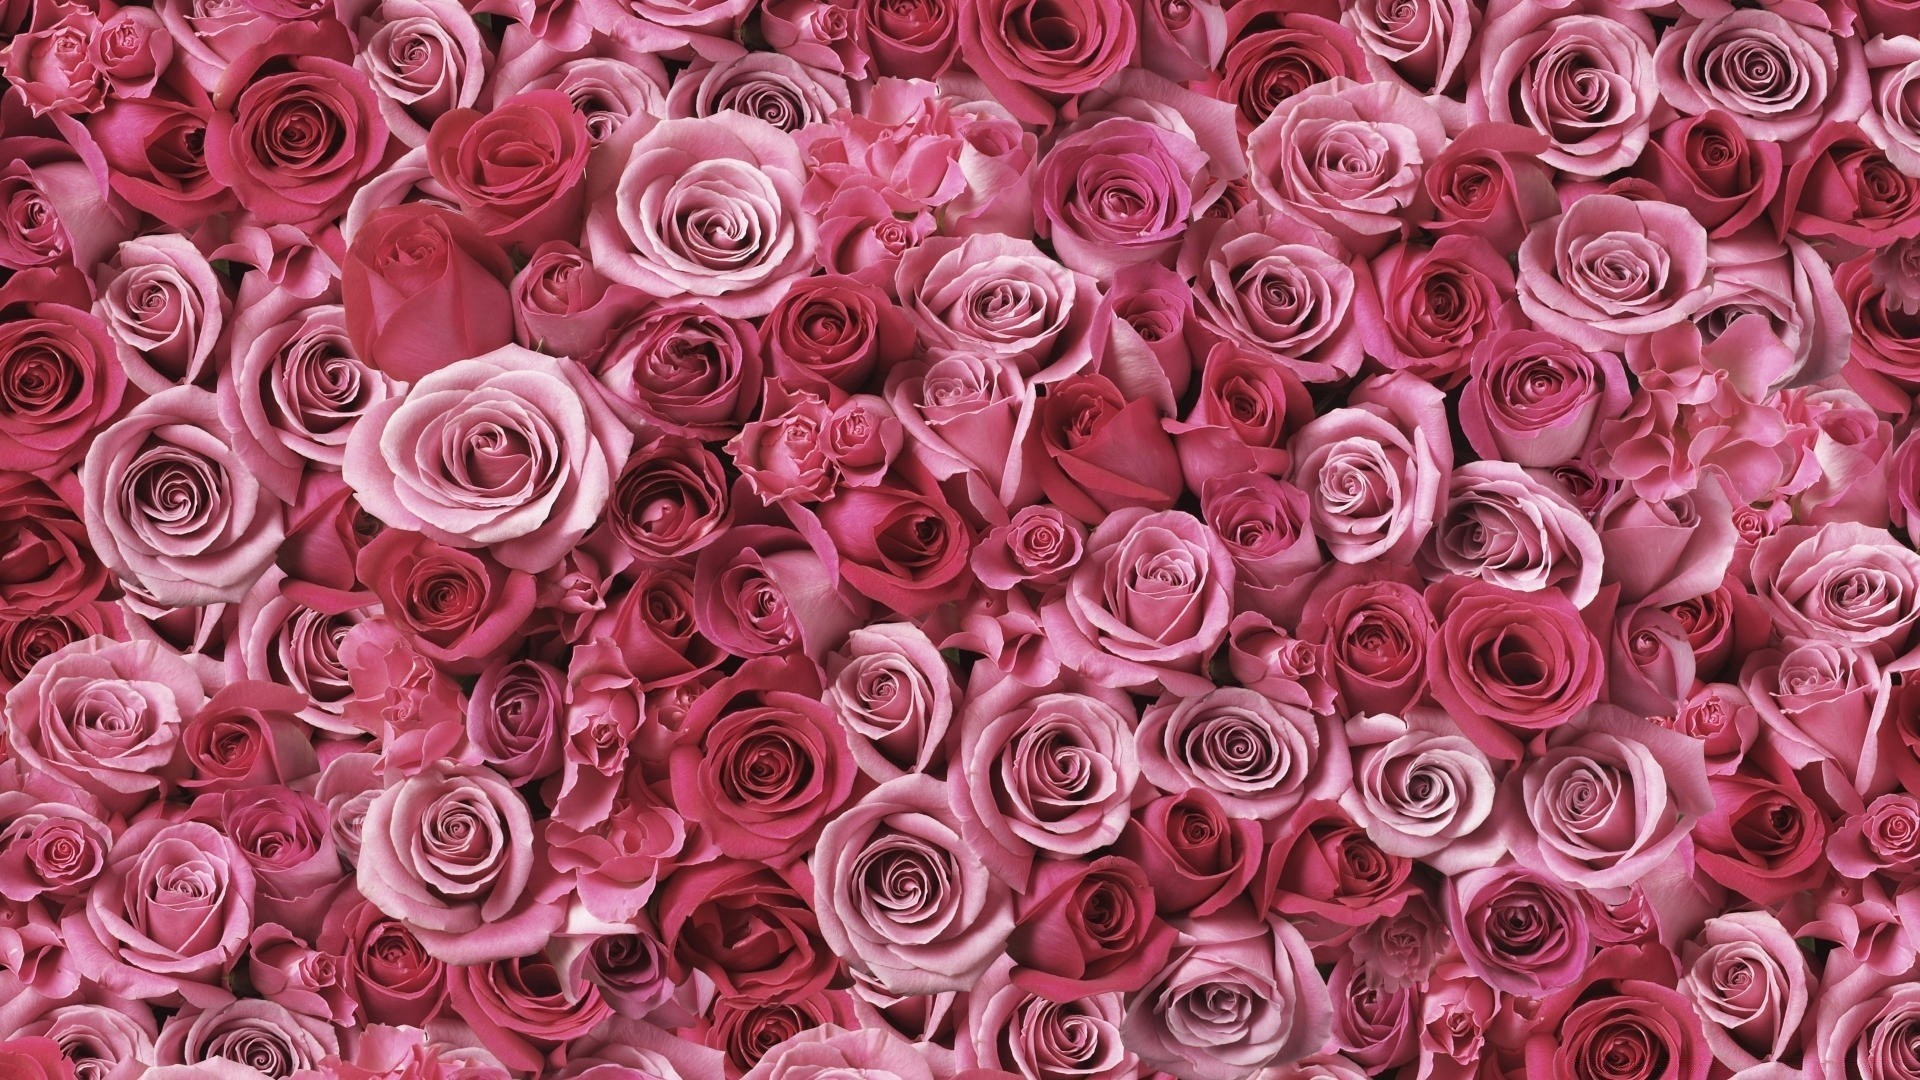 Pink Rose Wallpaper image hd